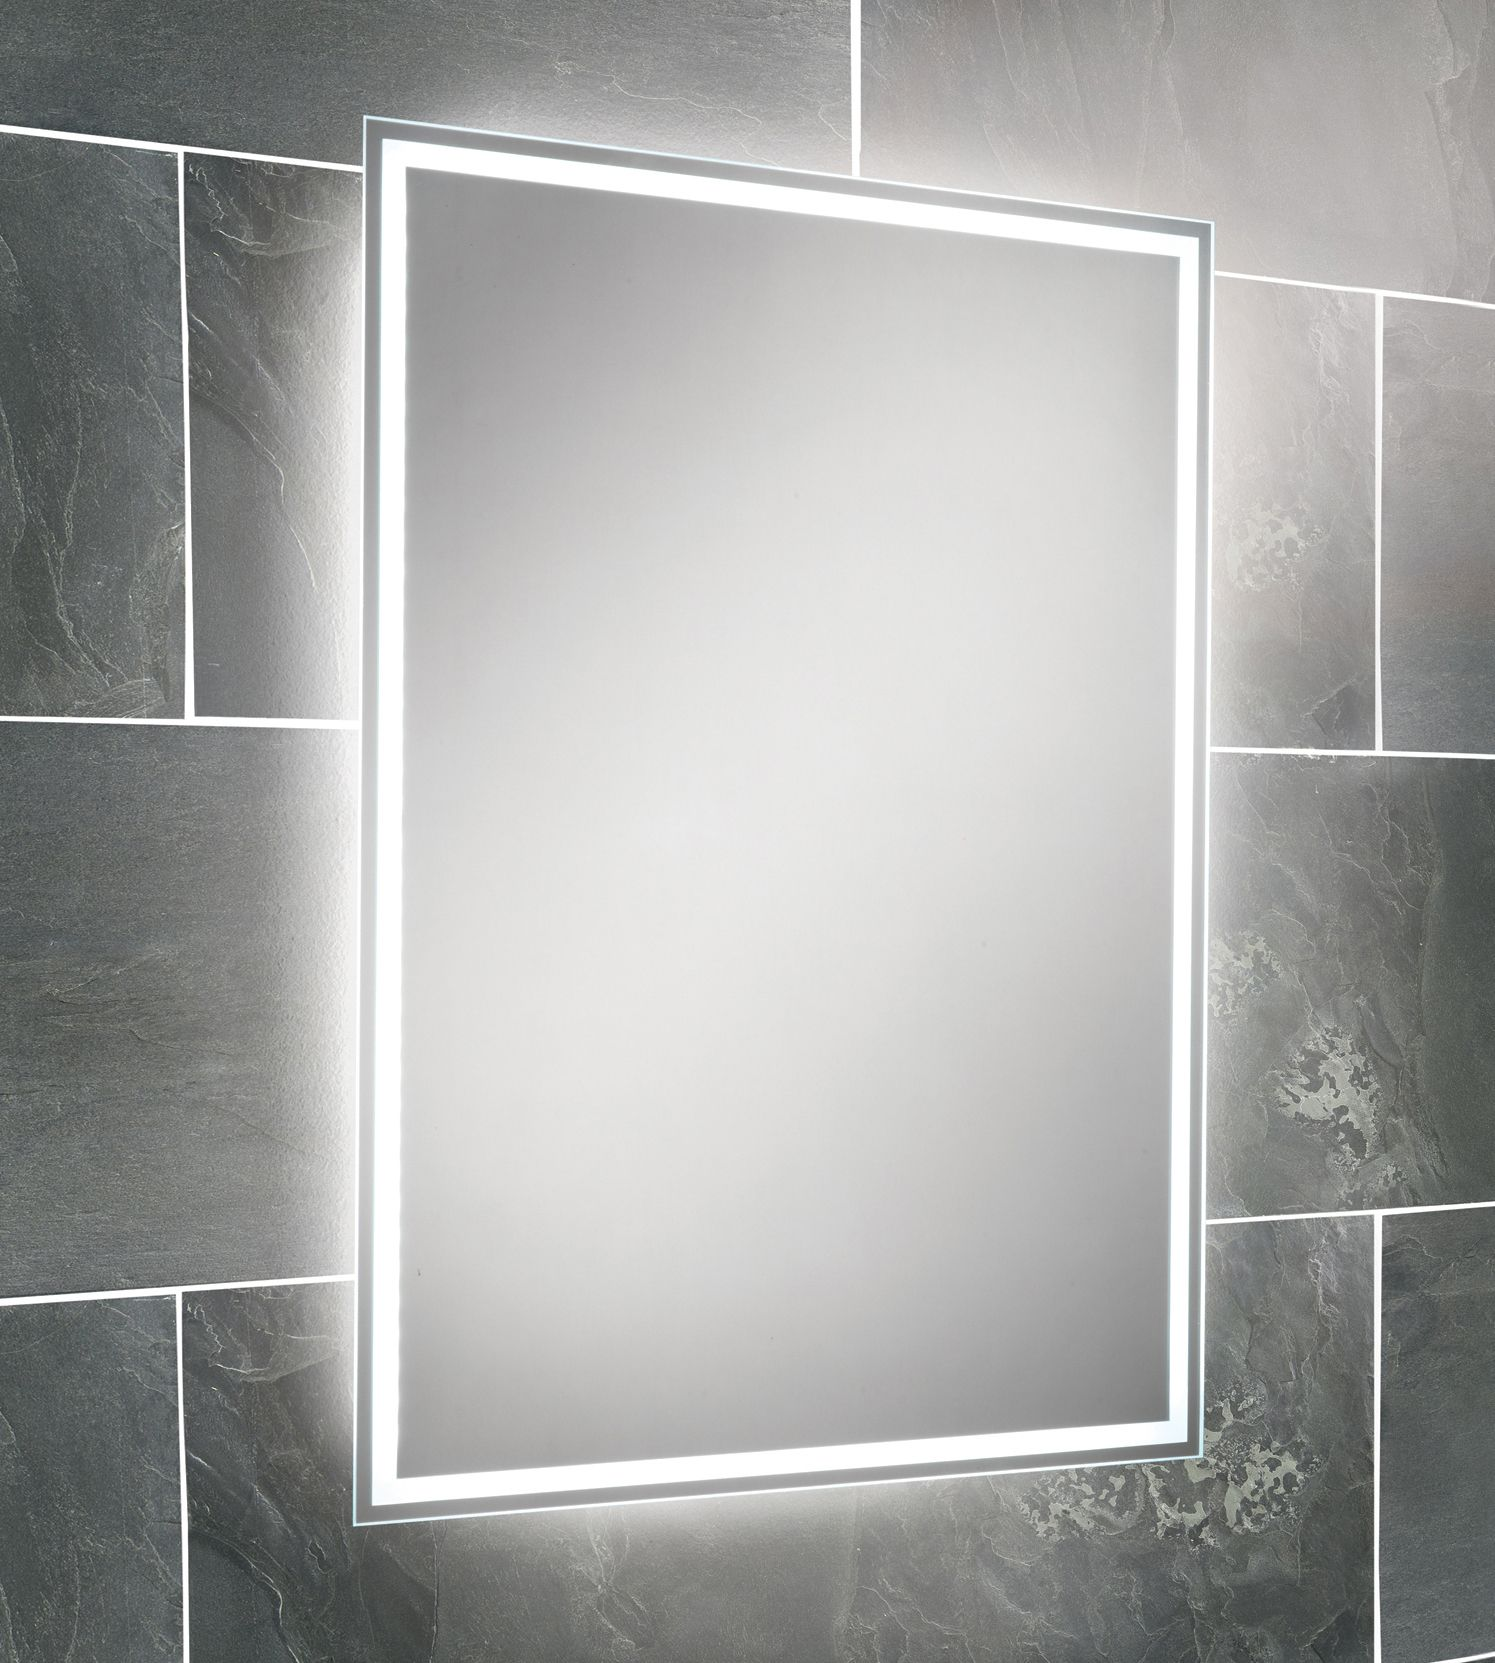 HIB Ella Steam Free LED Back Lit Bathroom Mirror 700 X 500mm